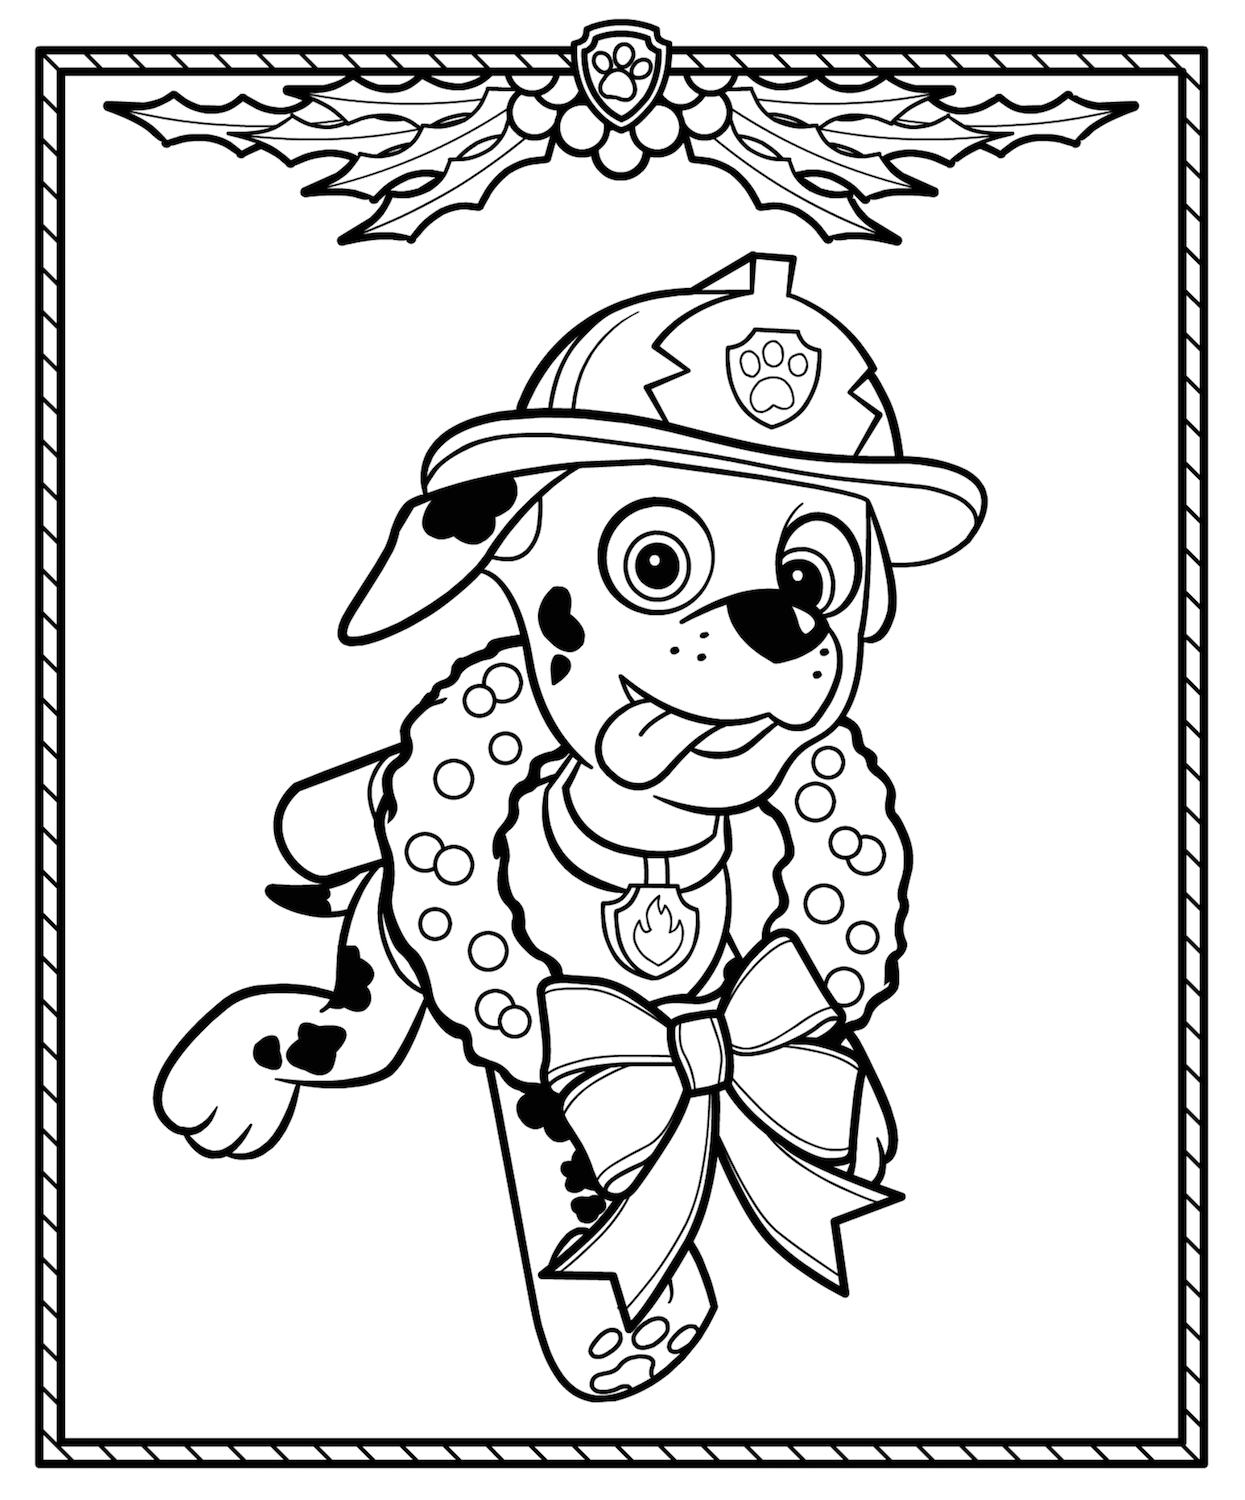 Lots Of Free Christmas Coloring Pages For Kids Including Santa Claus Rudolph Snowman Paw Patrol Coloring Paw Patrol Christmas Free Christmas Coloring Pages [ 1500 x 1245 Pixel ]